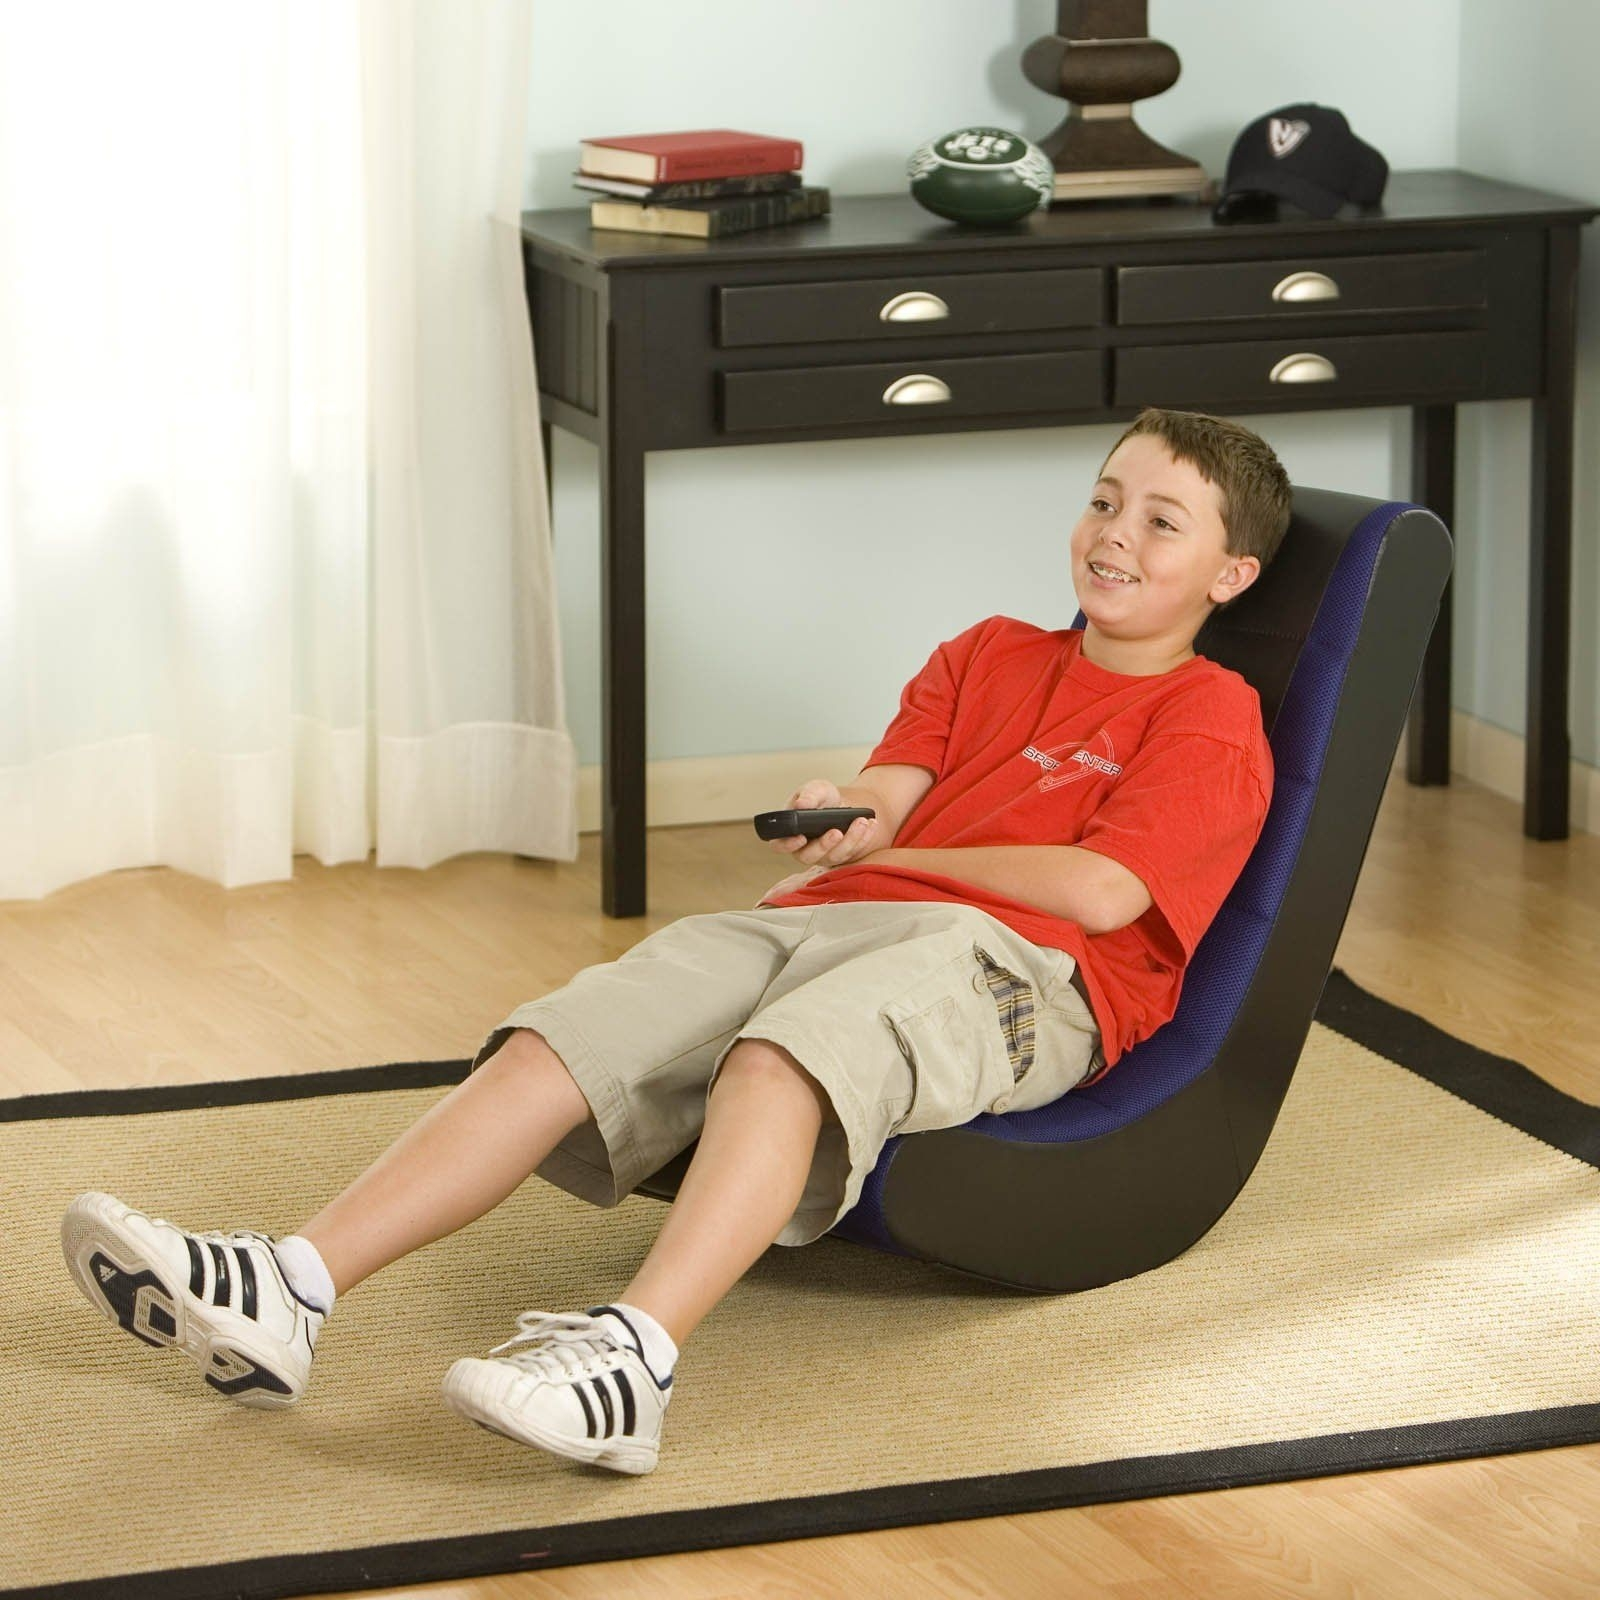 Well, things have changed o. Game Room Chairs - Ideas on Foter